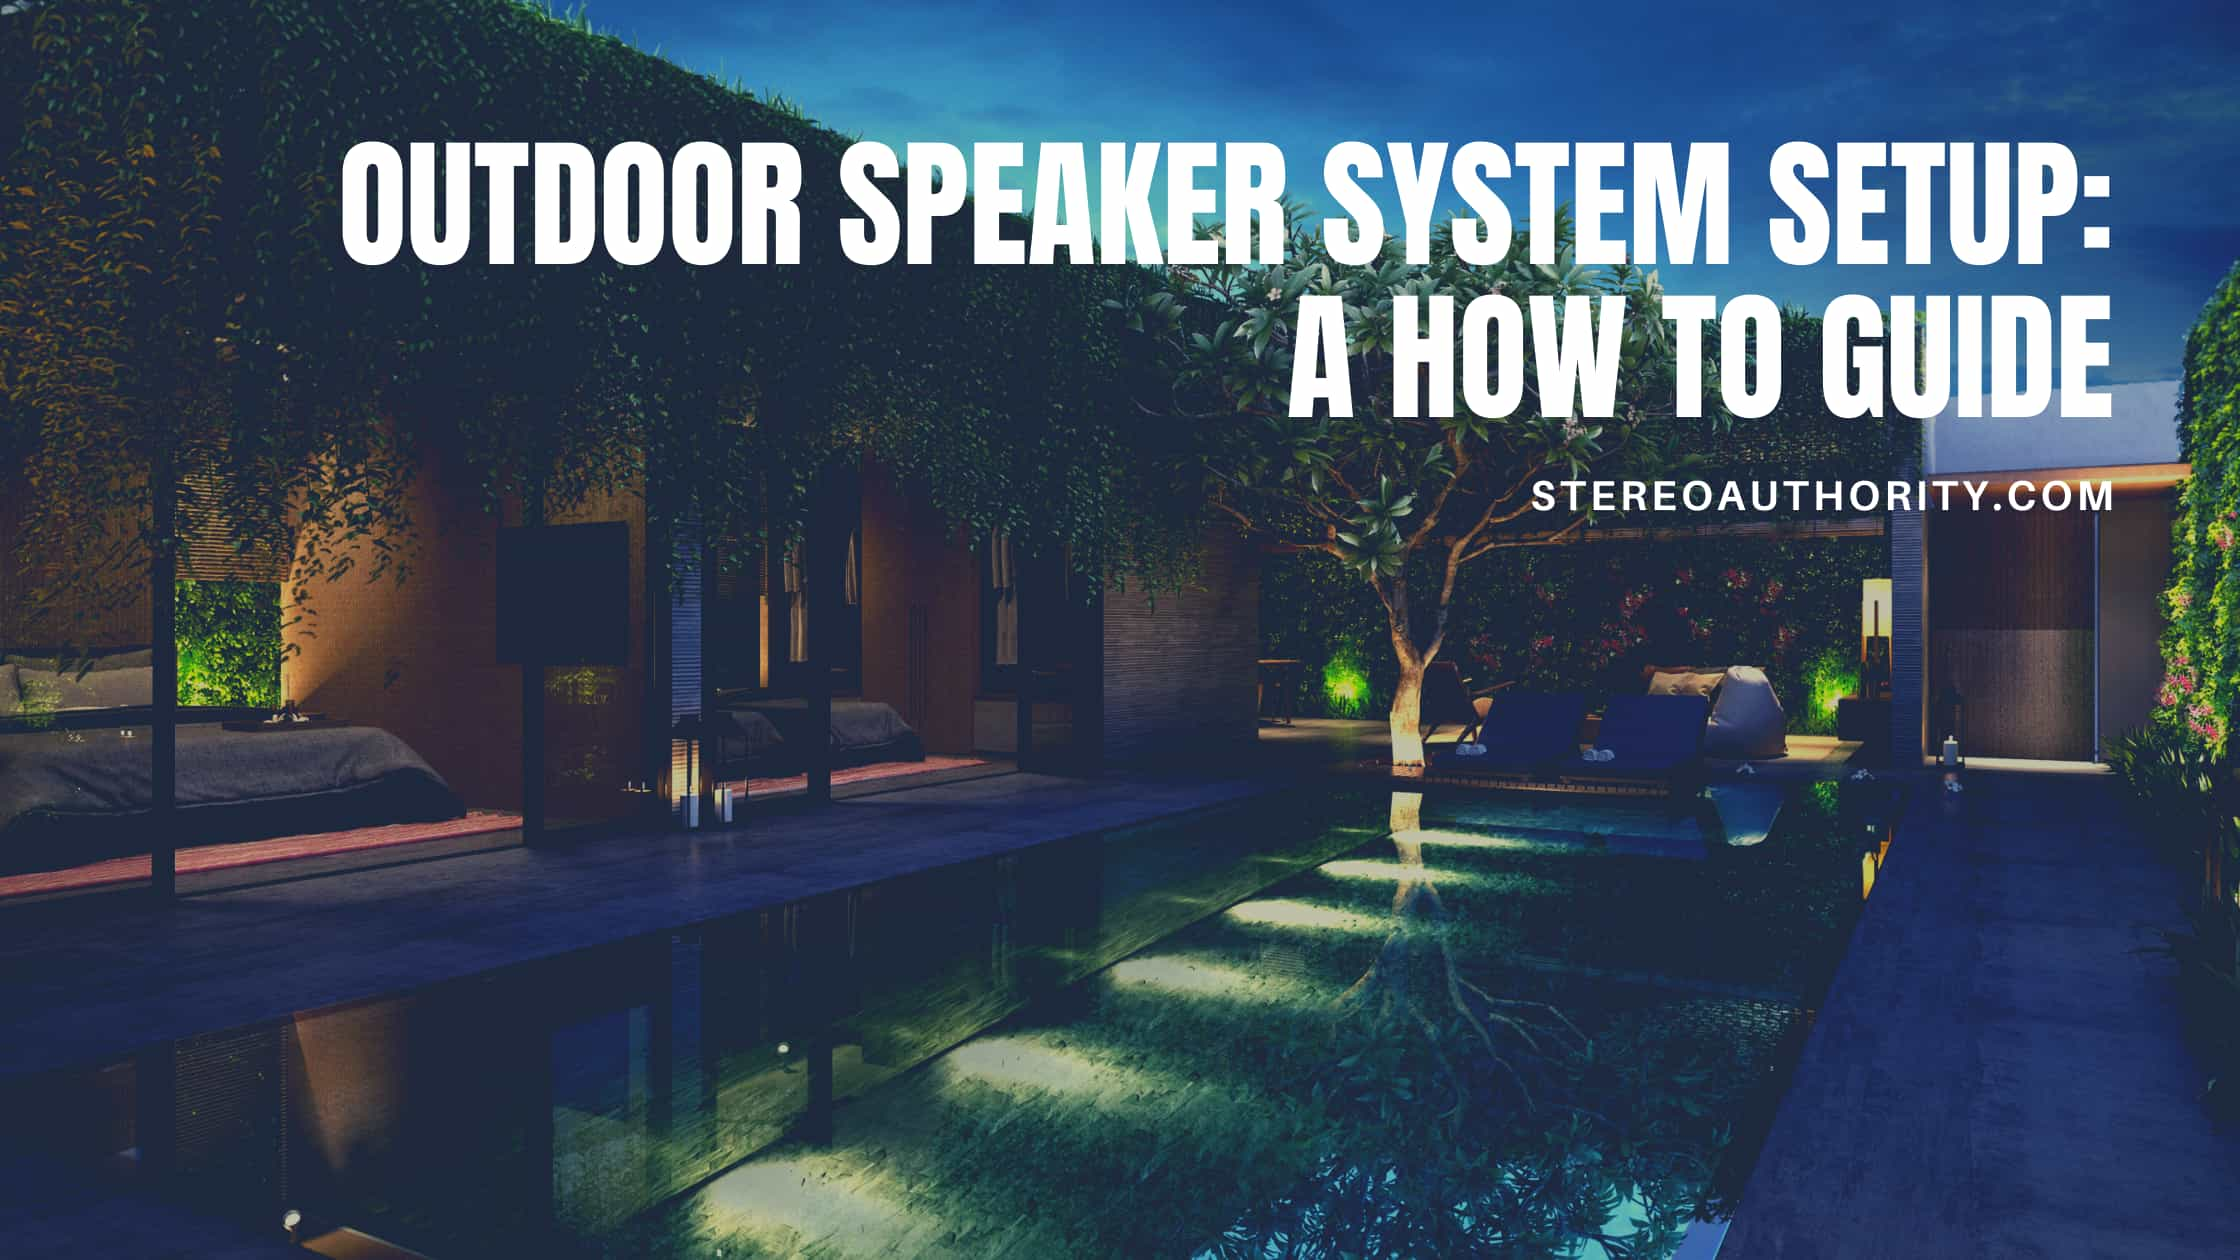 Outdoor Speaker System Setup - How to Guide